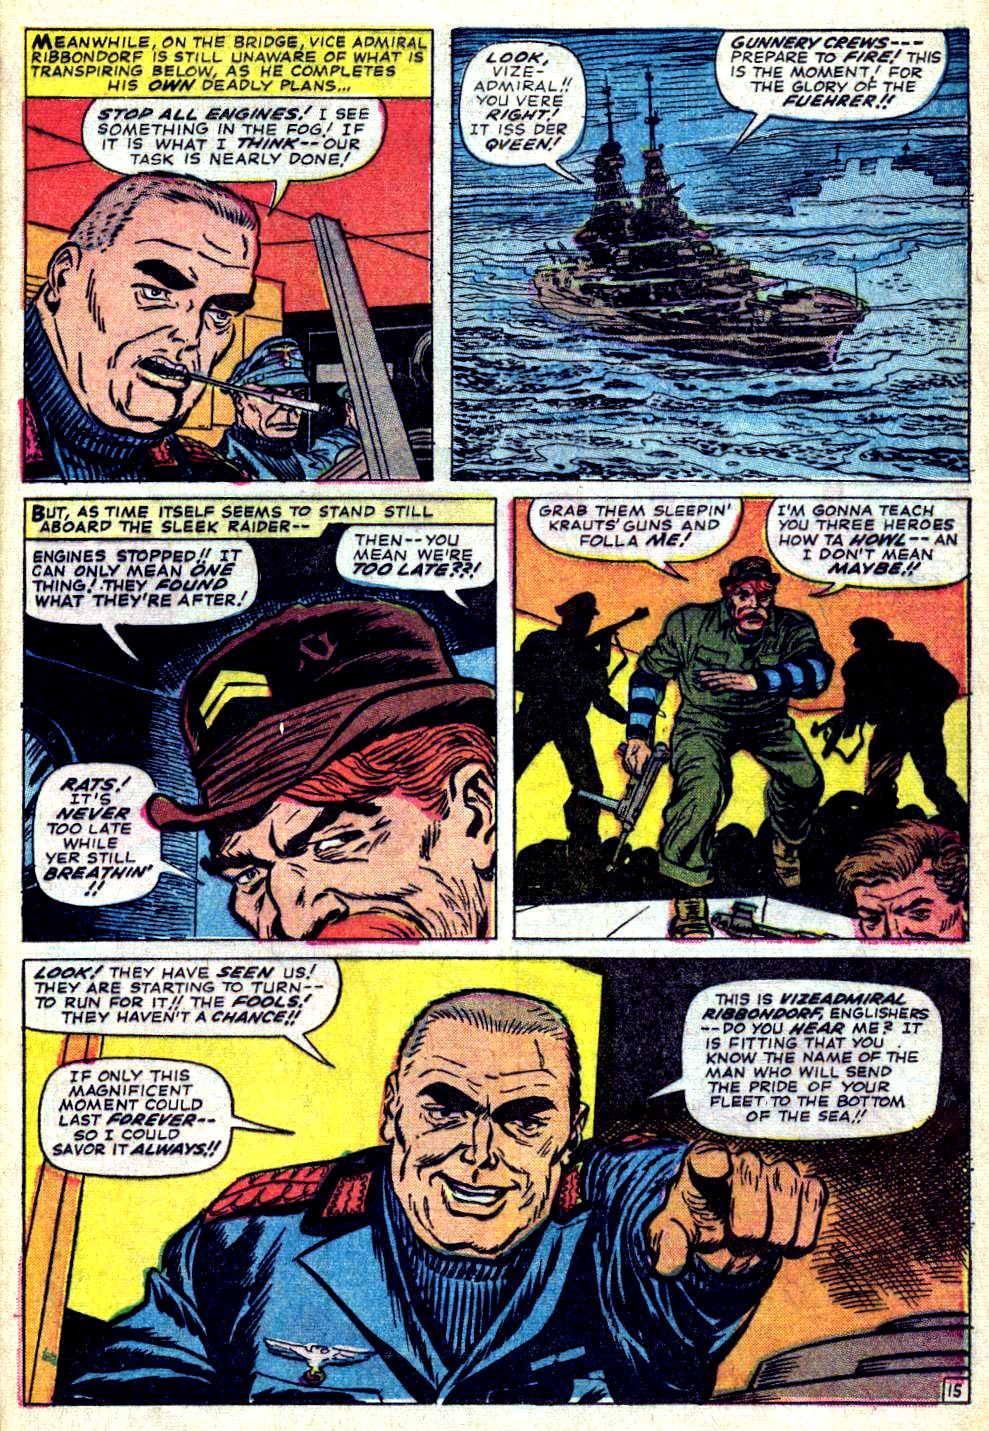 Read online Sgt. Fury comic -  Issue #26 - 21